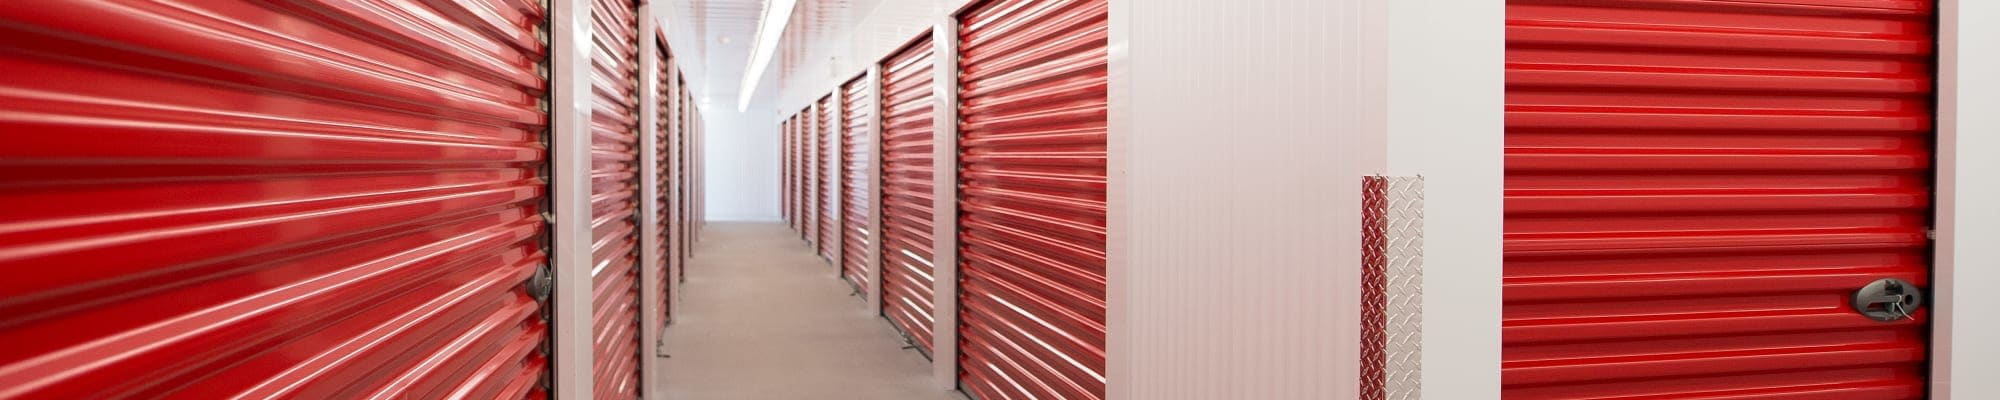 Auctions at Mini Storage Depot in Knoxville, Tennessee